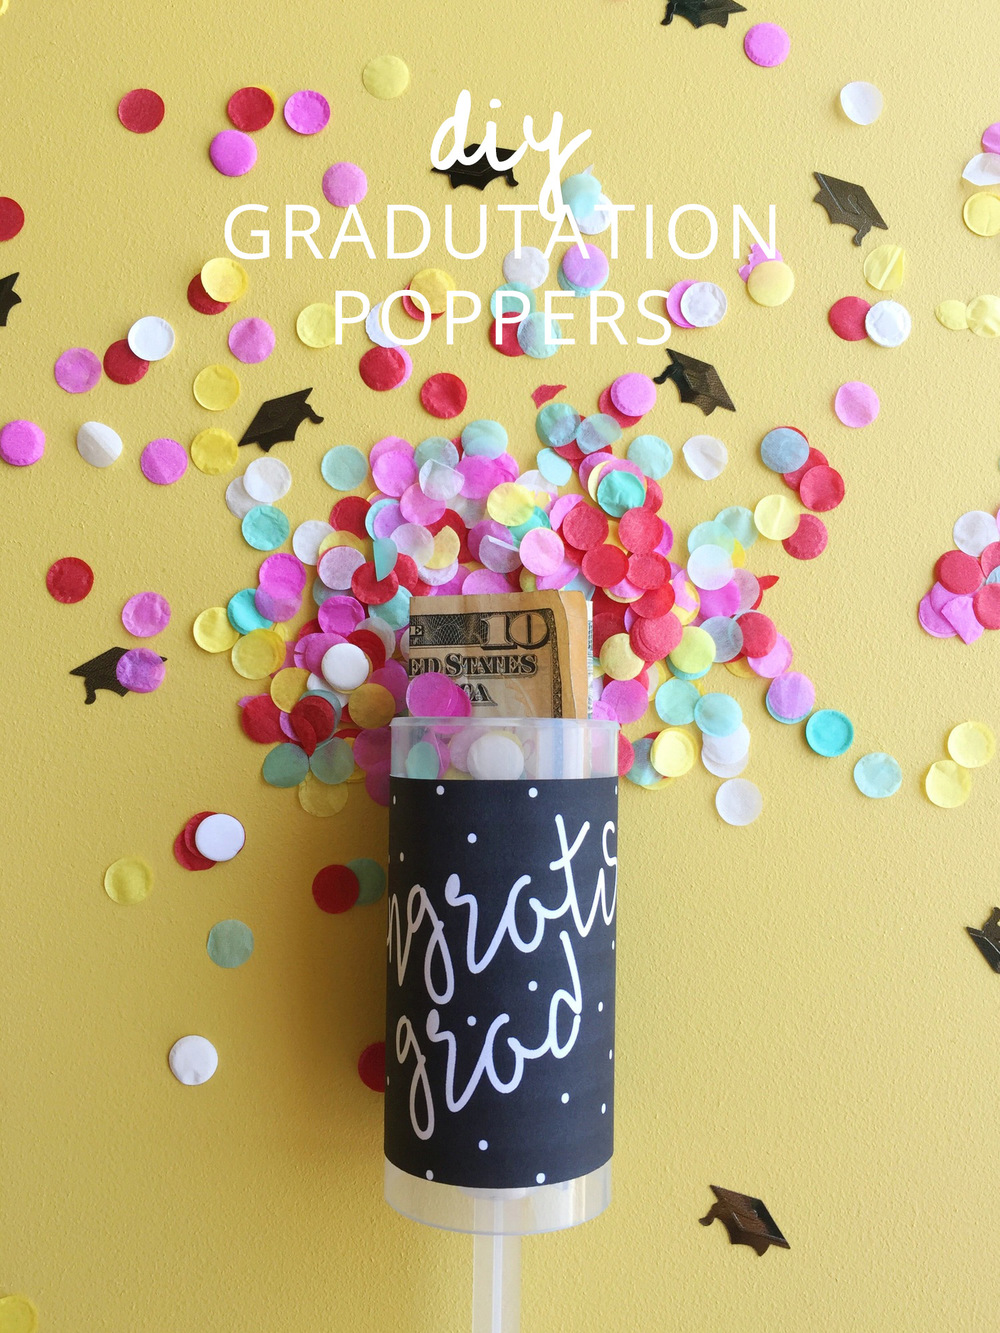 Make your own diy graduation poppers + download a free printable